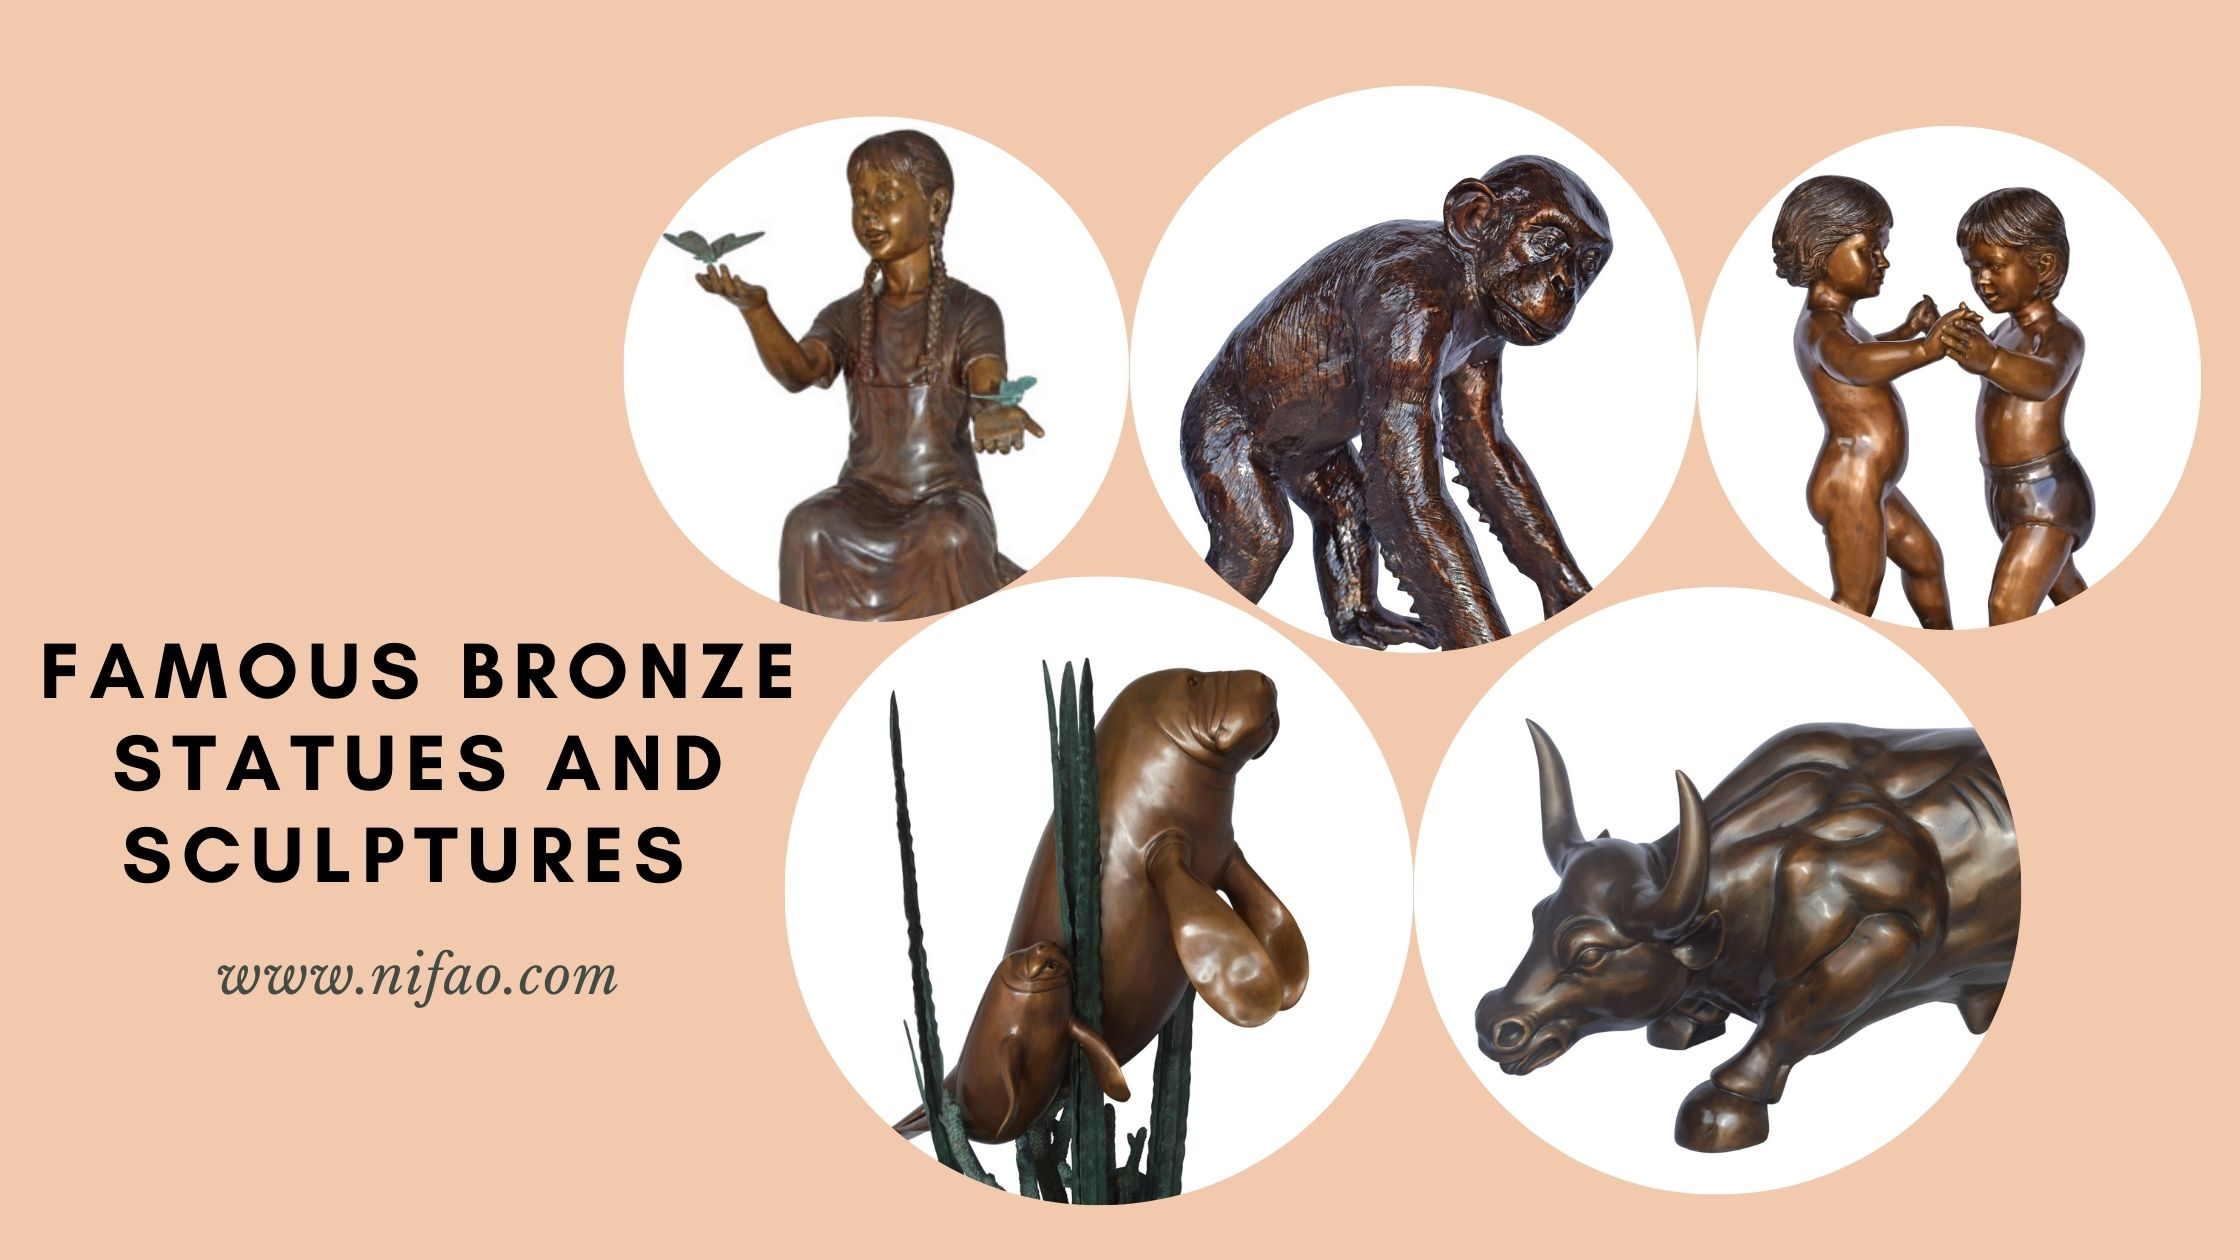 Reproductions of Famous Bronze Statues and Sculptures